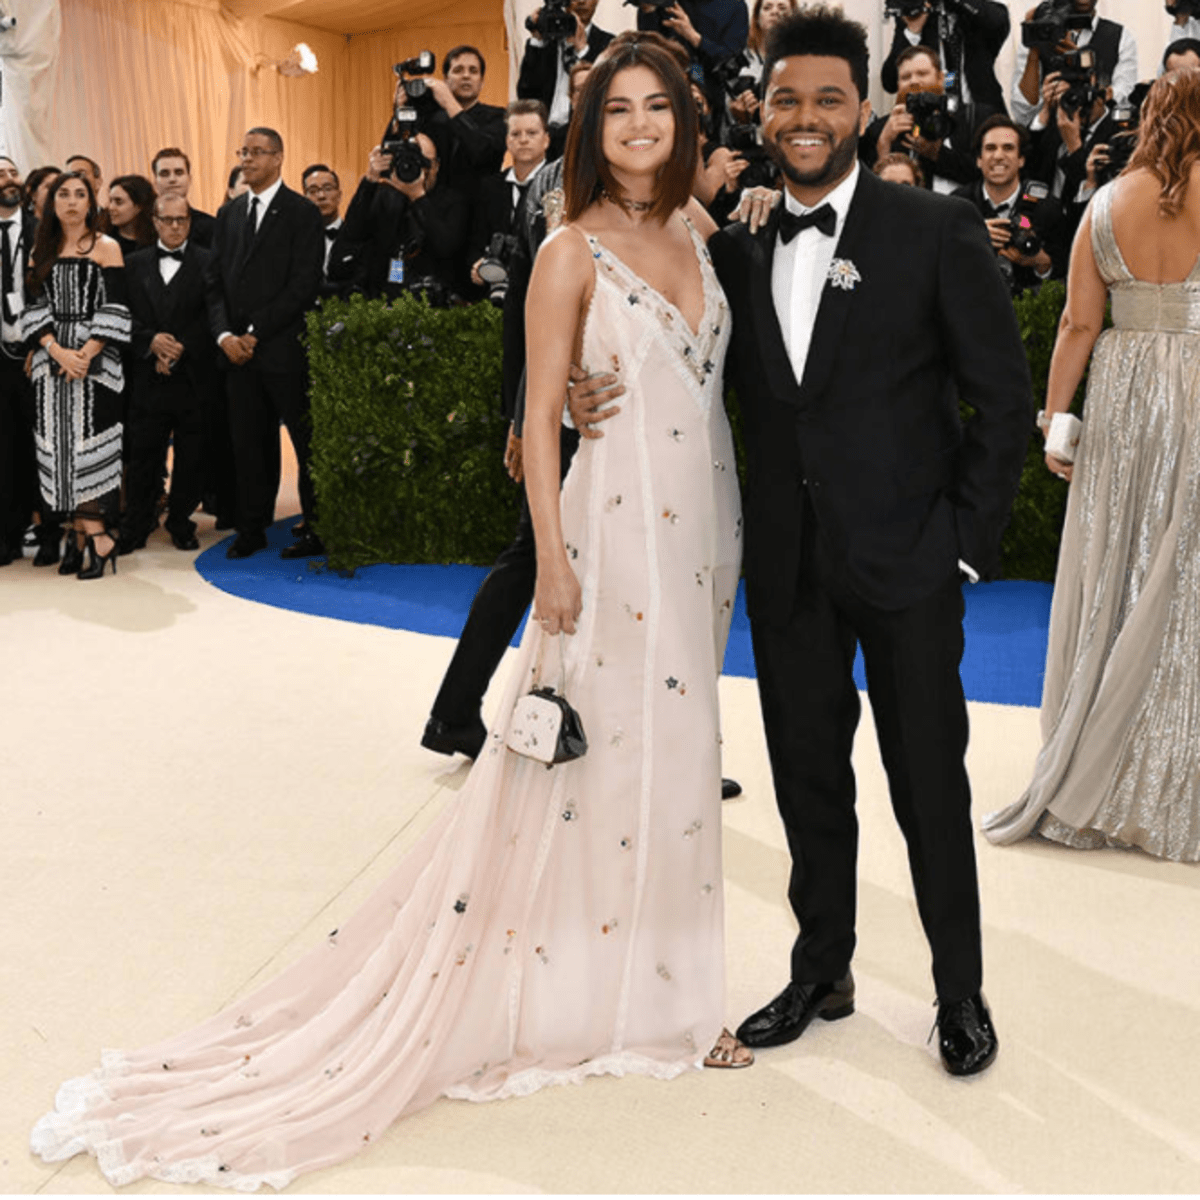 The Weeknd Selena Gomez at Met Costume Institute Gala